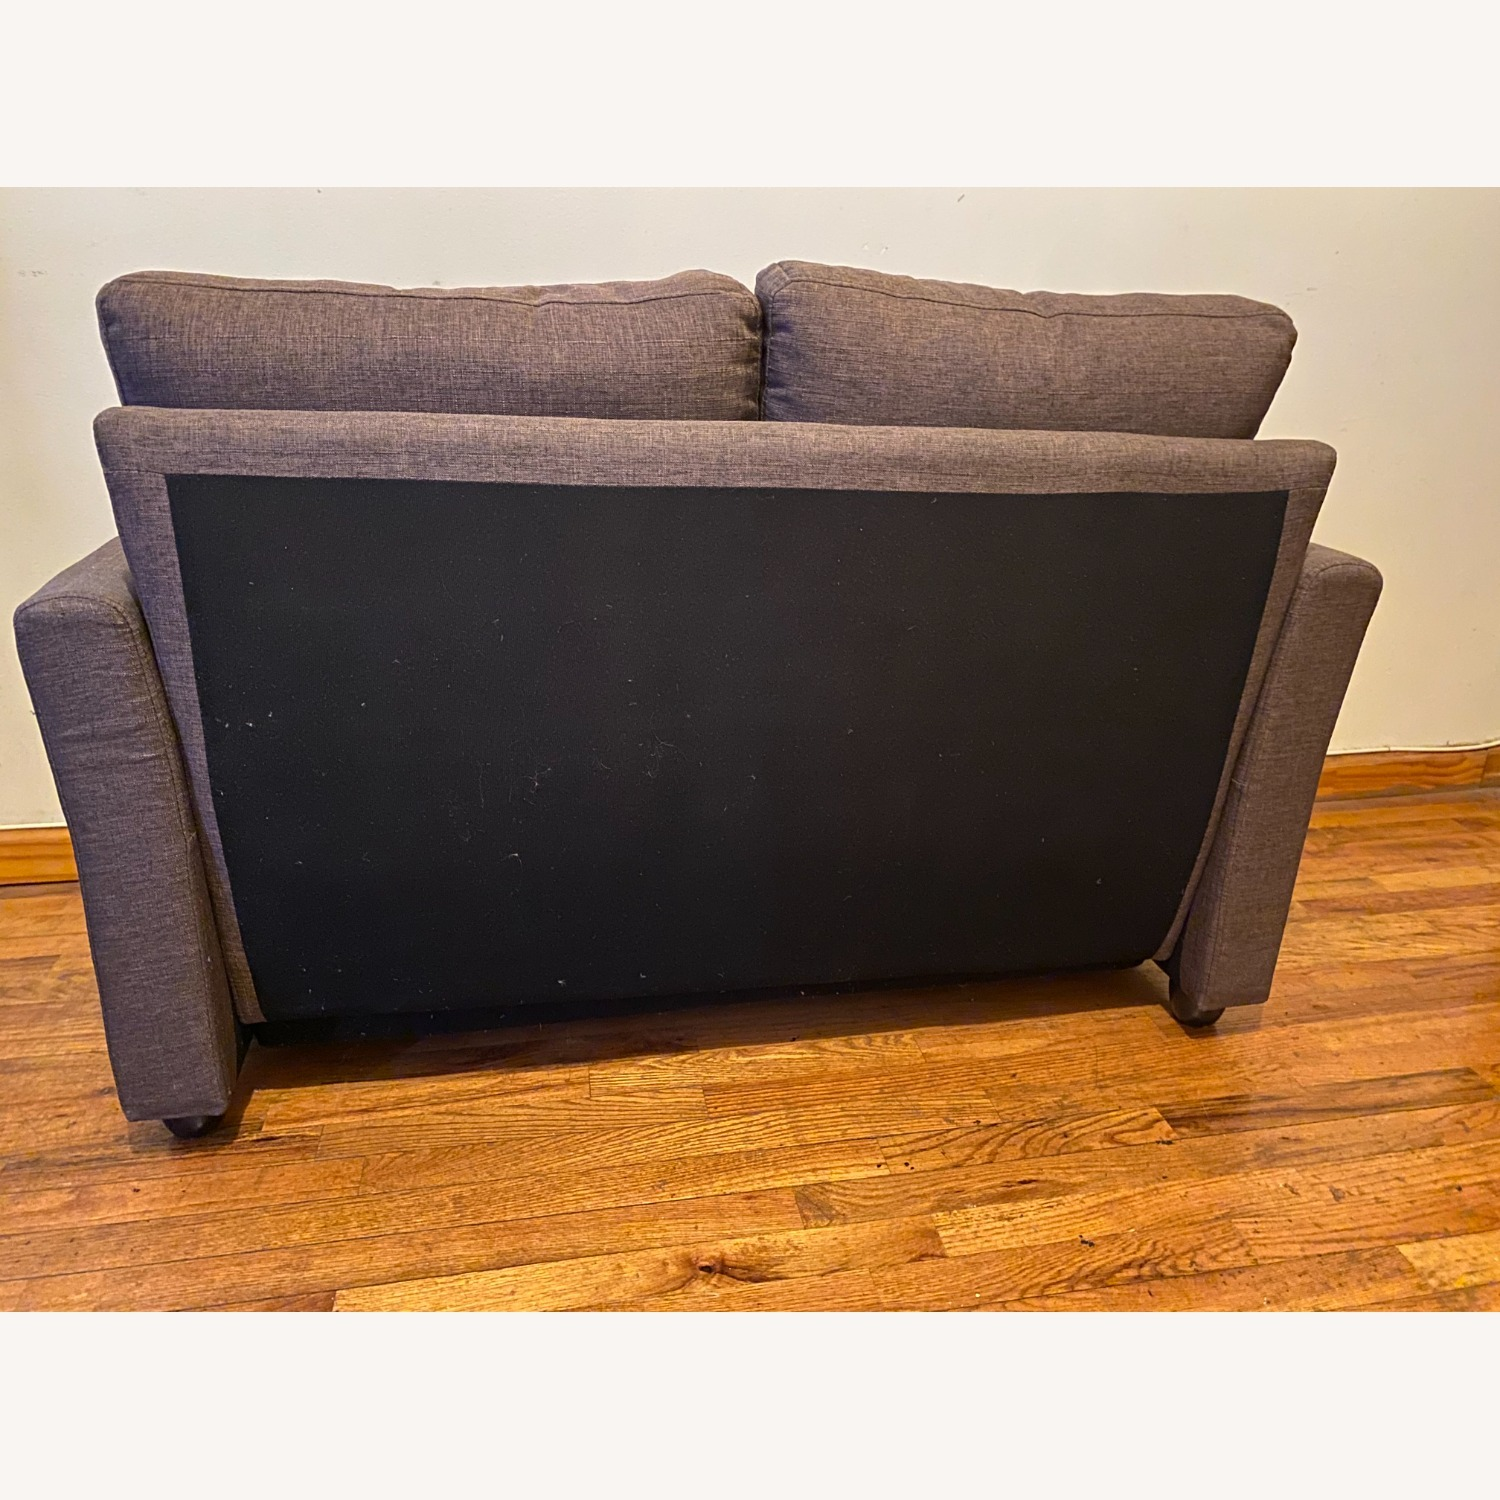 Two Seater Sofa with Storage - image-4